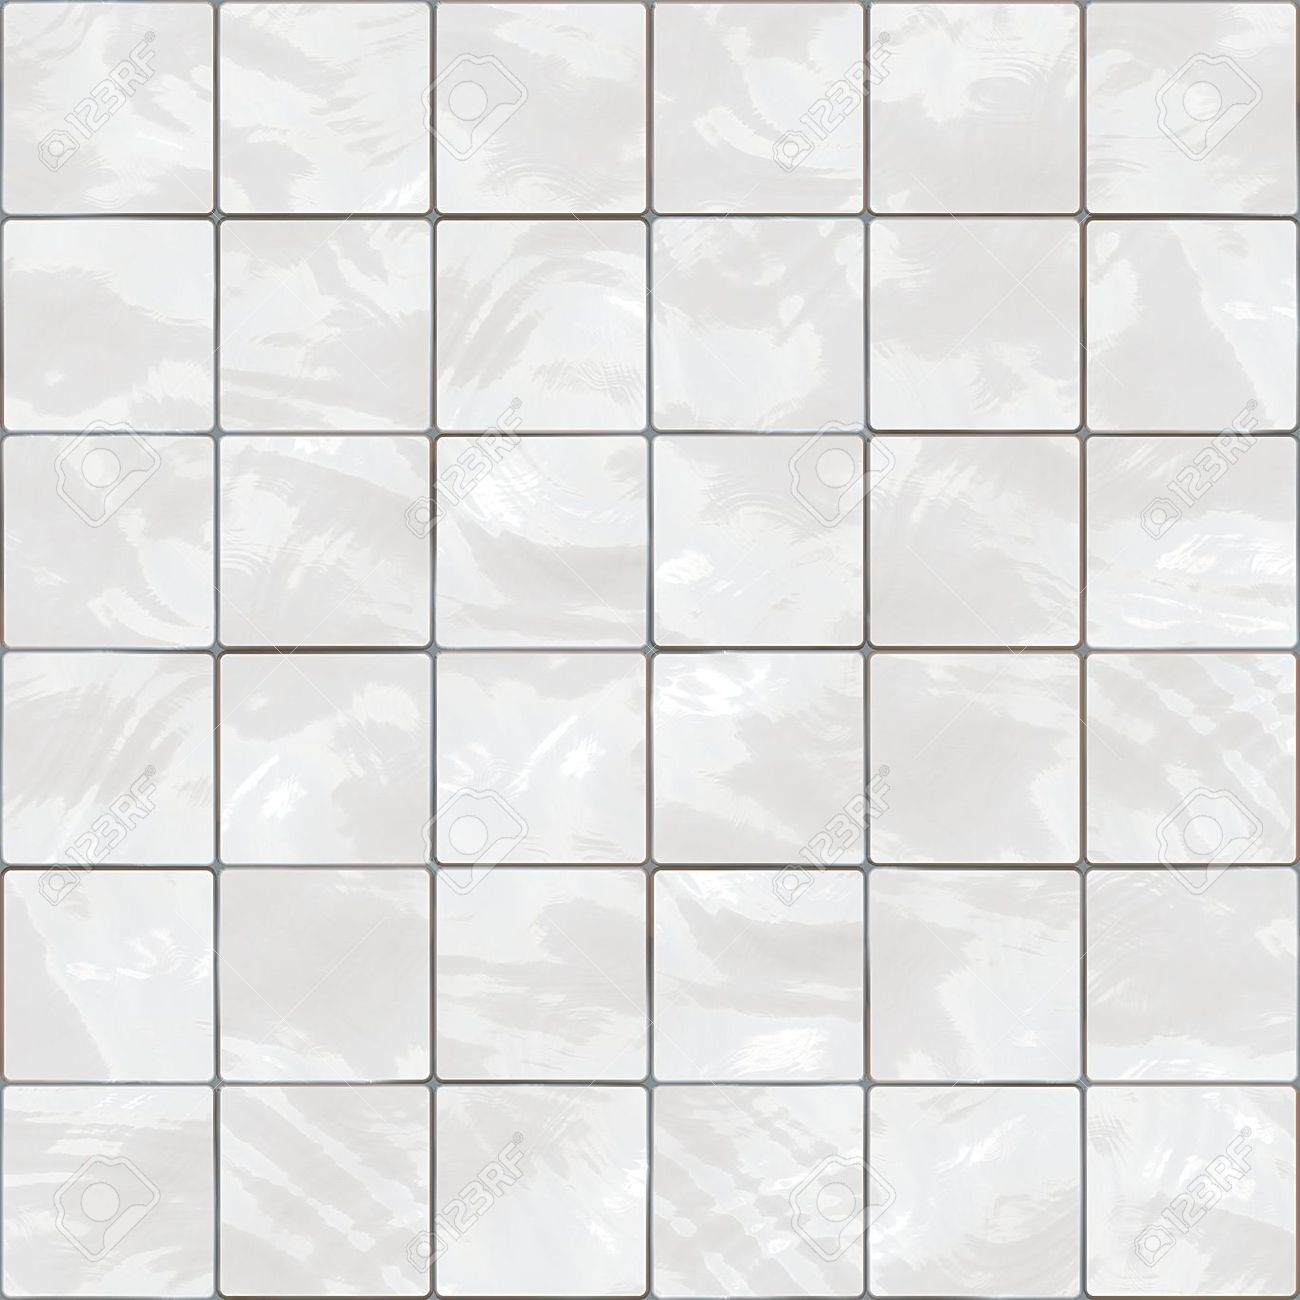 White Tile Floor Texture Shiny Seamless White Tiles Texture Stock Photo Picture And